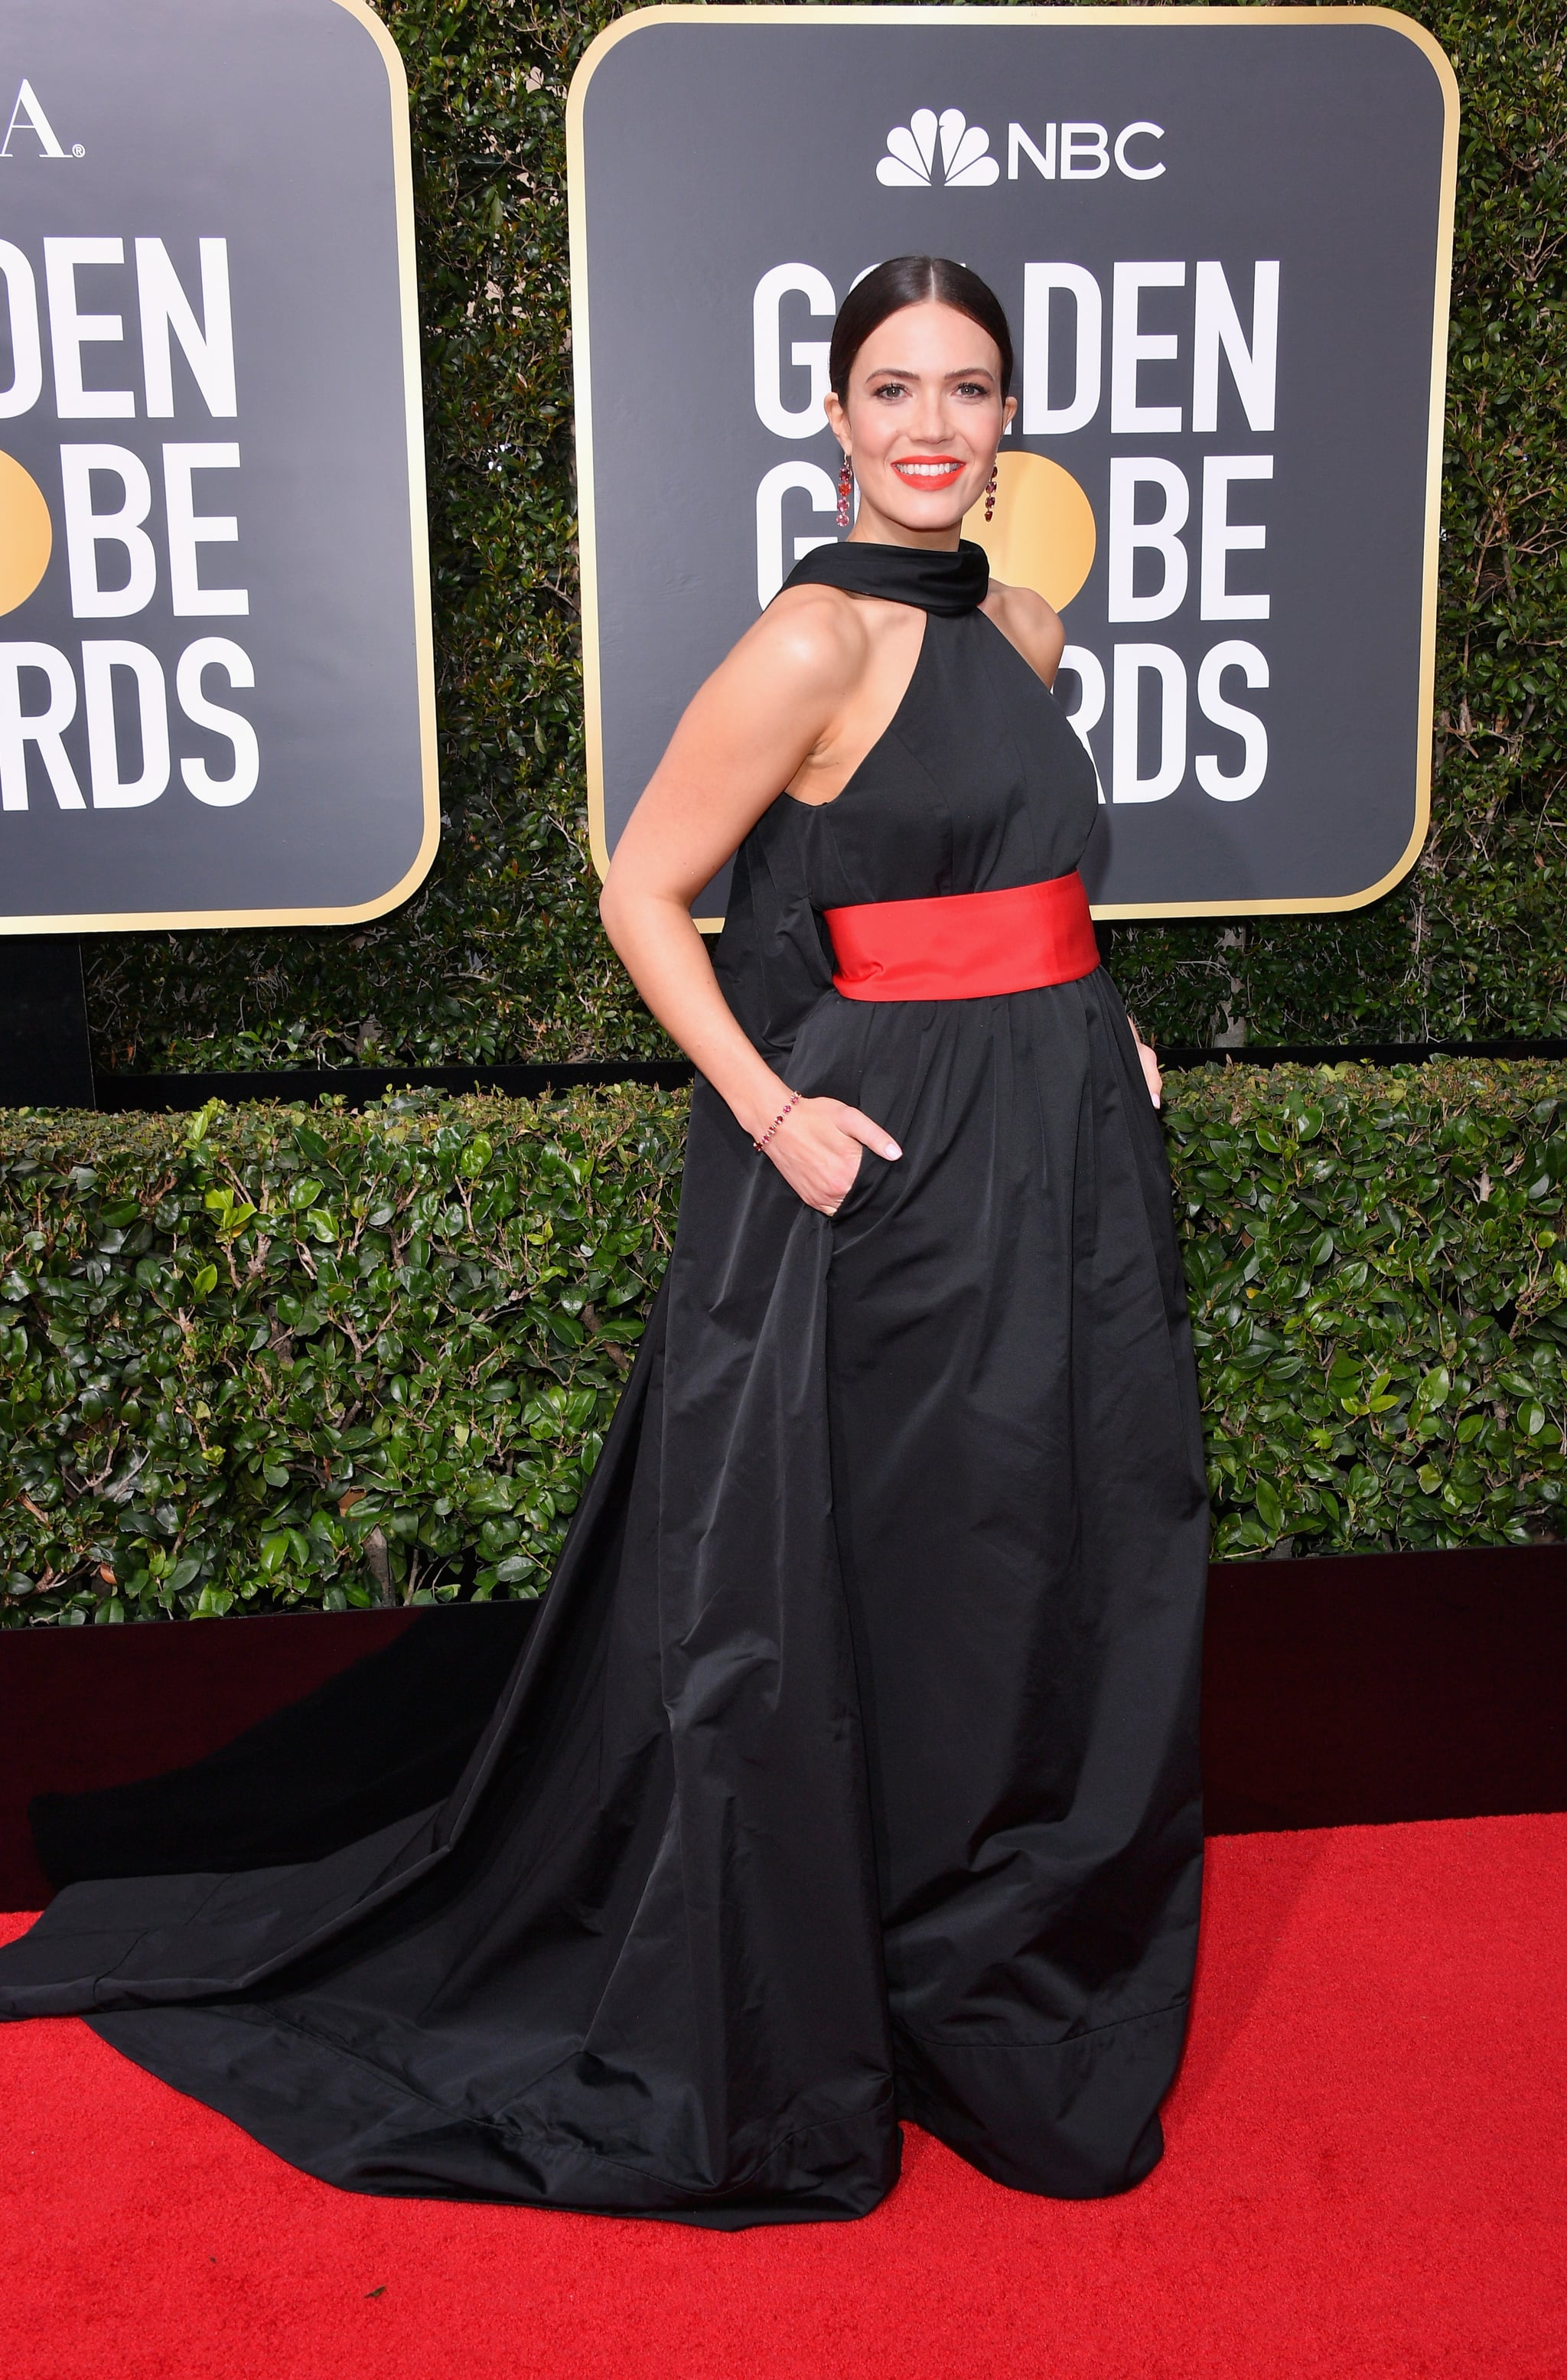 Image Result For Golden Globes Red Carpet Why Is Everyone Wearing Black